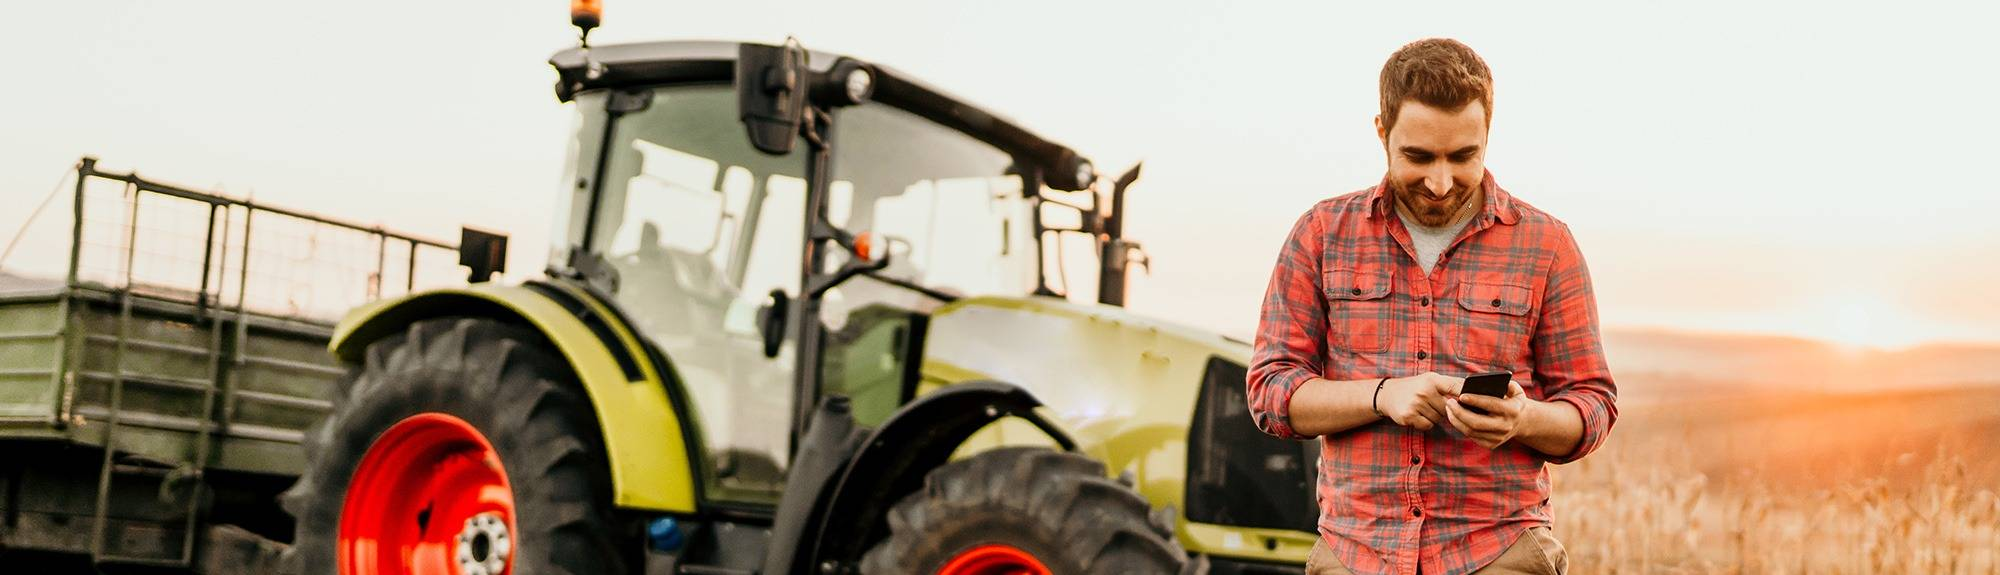 Farmer standing next to tractor in a field on his mobile phone